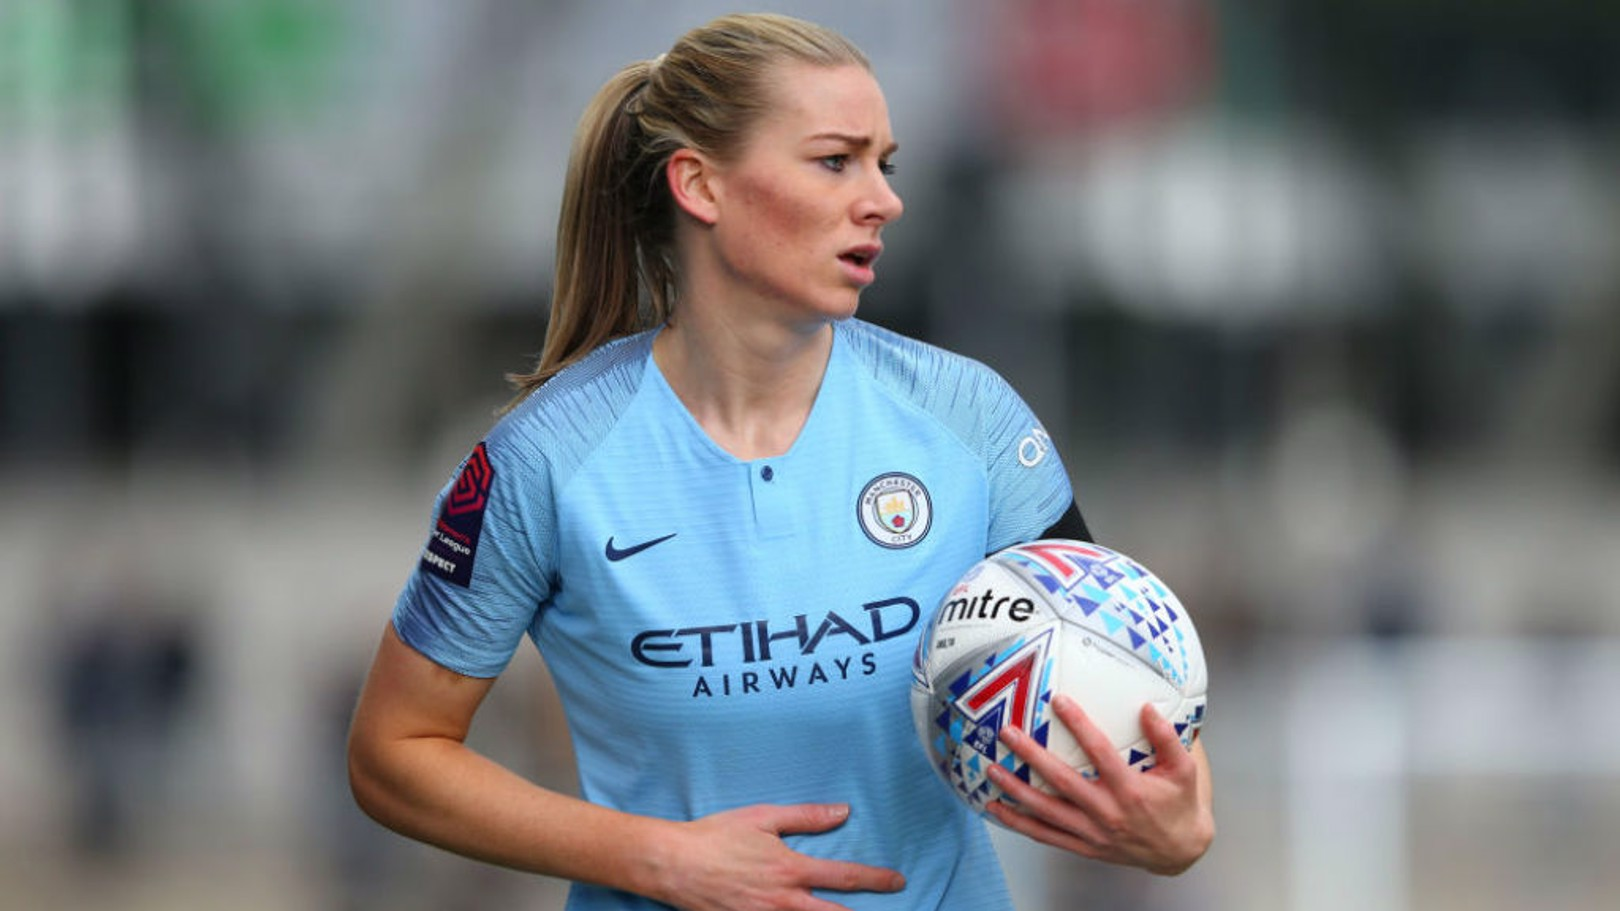 CALL-UP: Gemma Bonner has become the tenth Manchester City player to be called into the Lionesses squad for the forthcoming Road to France Series games